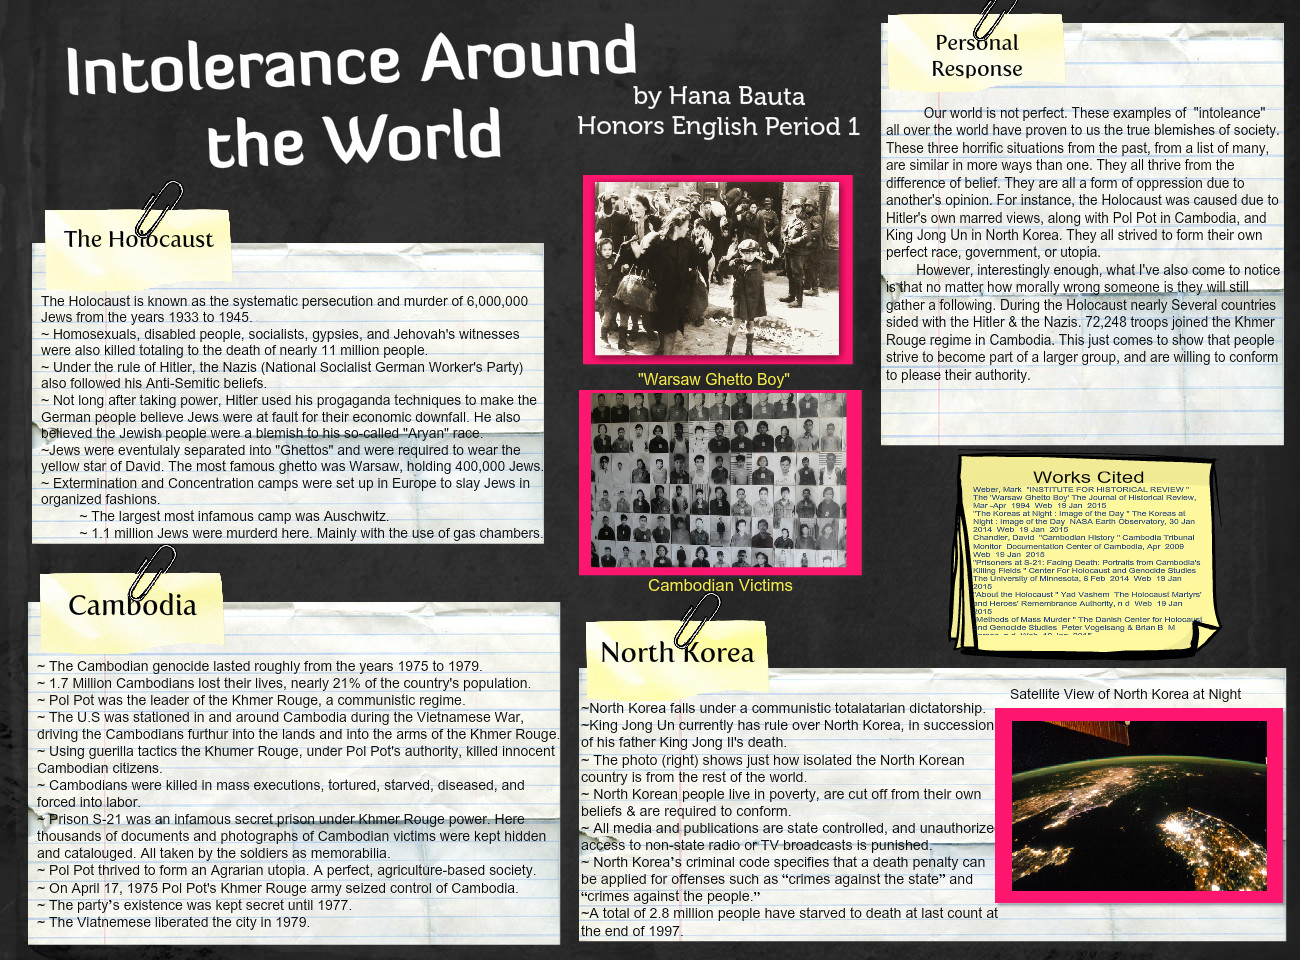 Intolerance Around the World